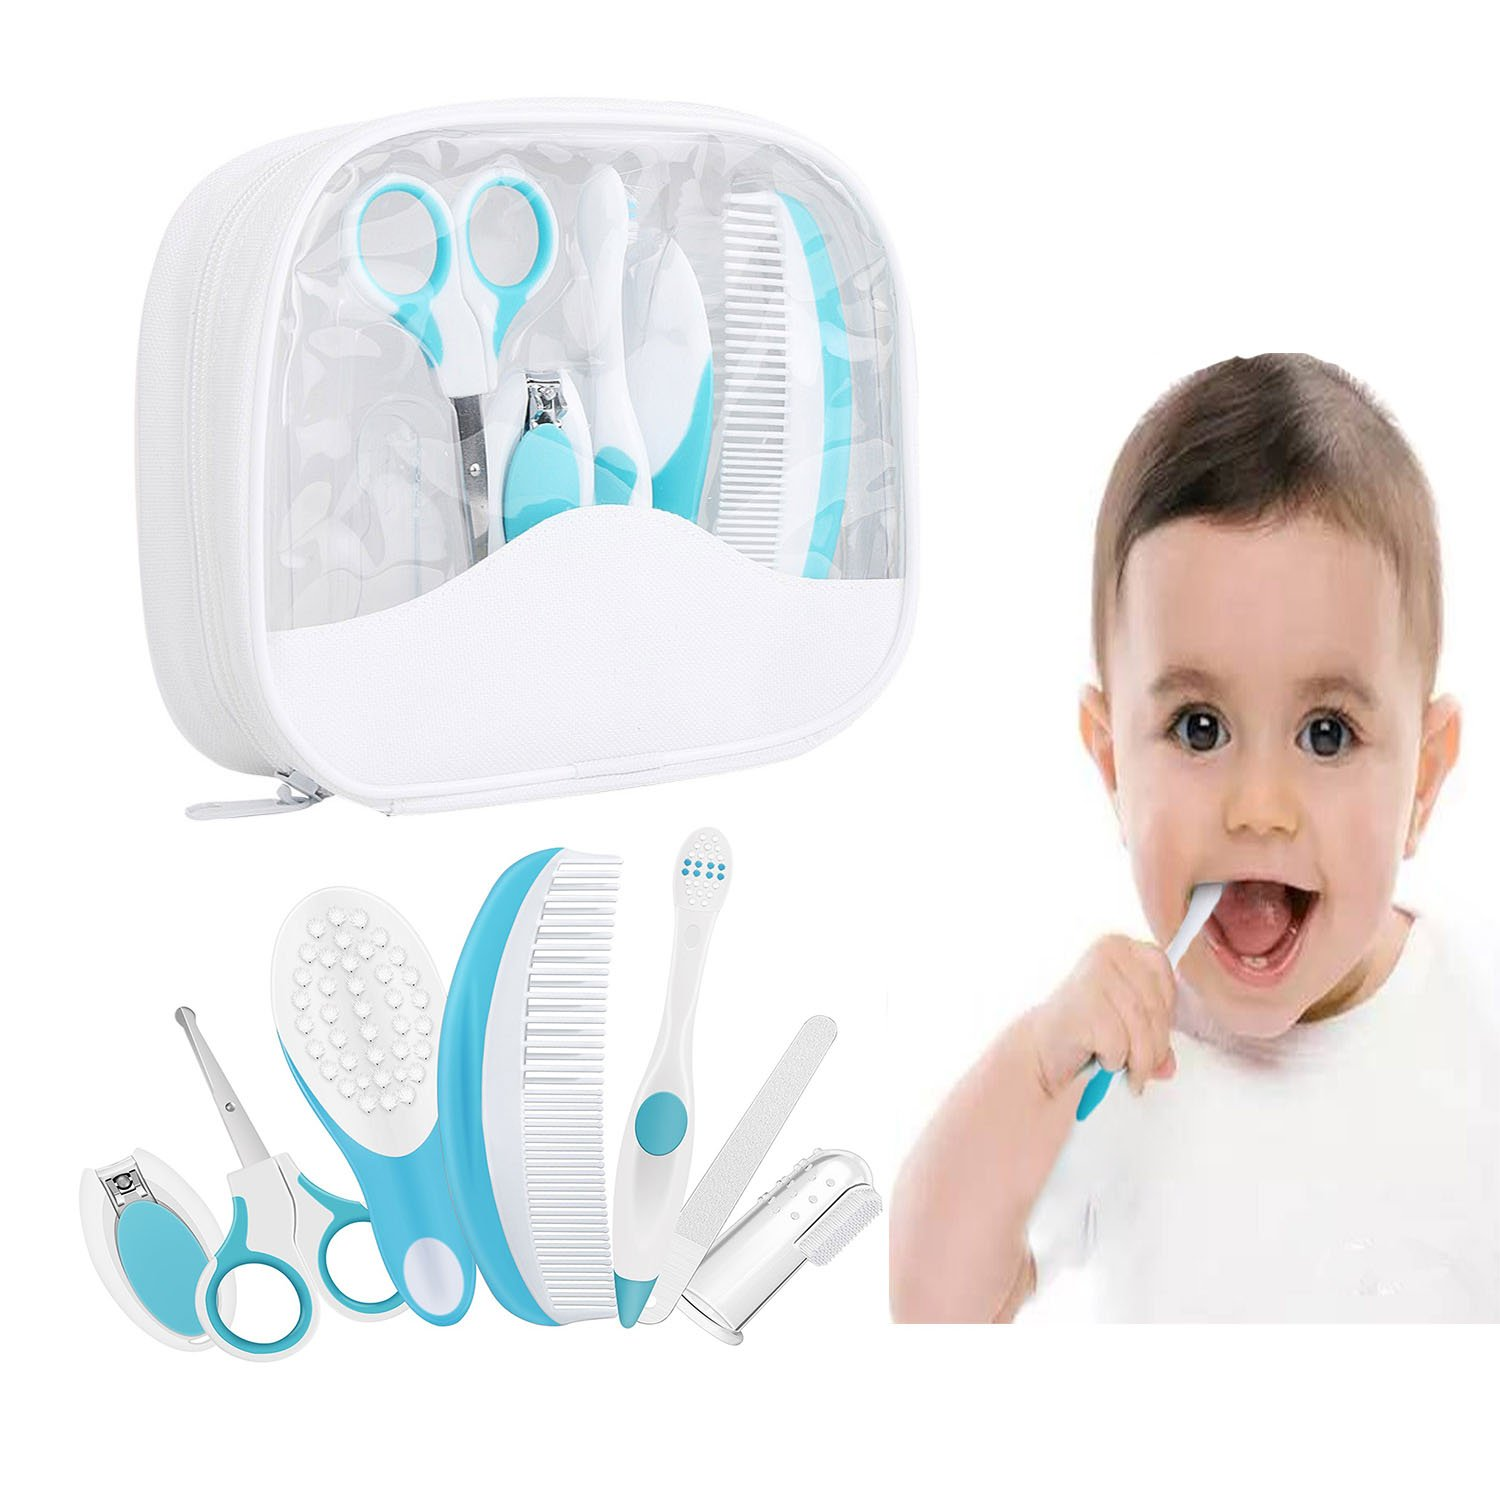 Essential Baby Healthcare and Grooming Kit Set - Nail Care Set with Nail Clipper, Brush, File, Scissors, Comb, Toothbrush & Finger Toothbrush for Infants, Newborns, Kids, Boys and Girls (Blue)